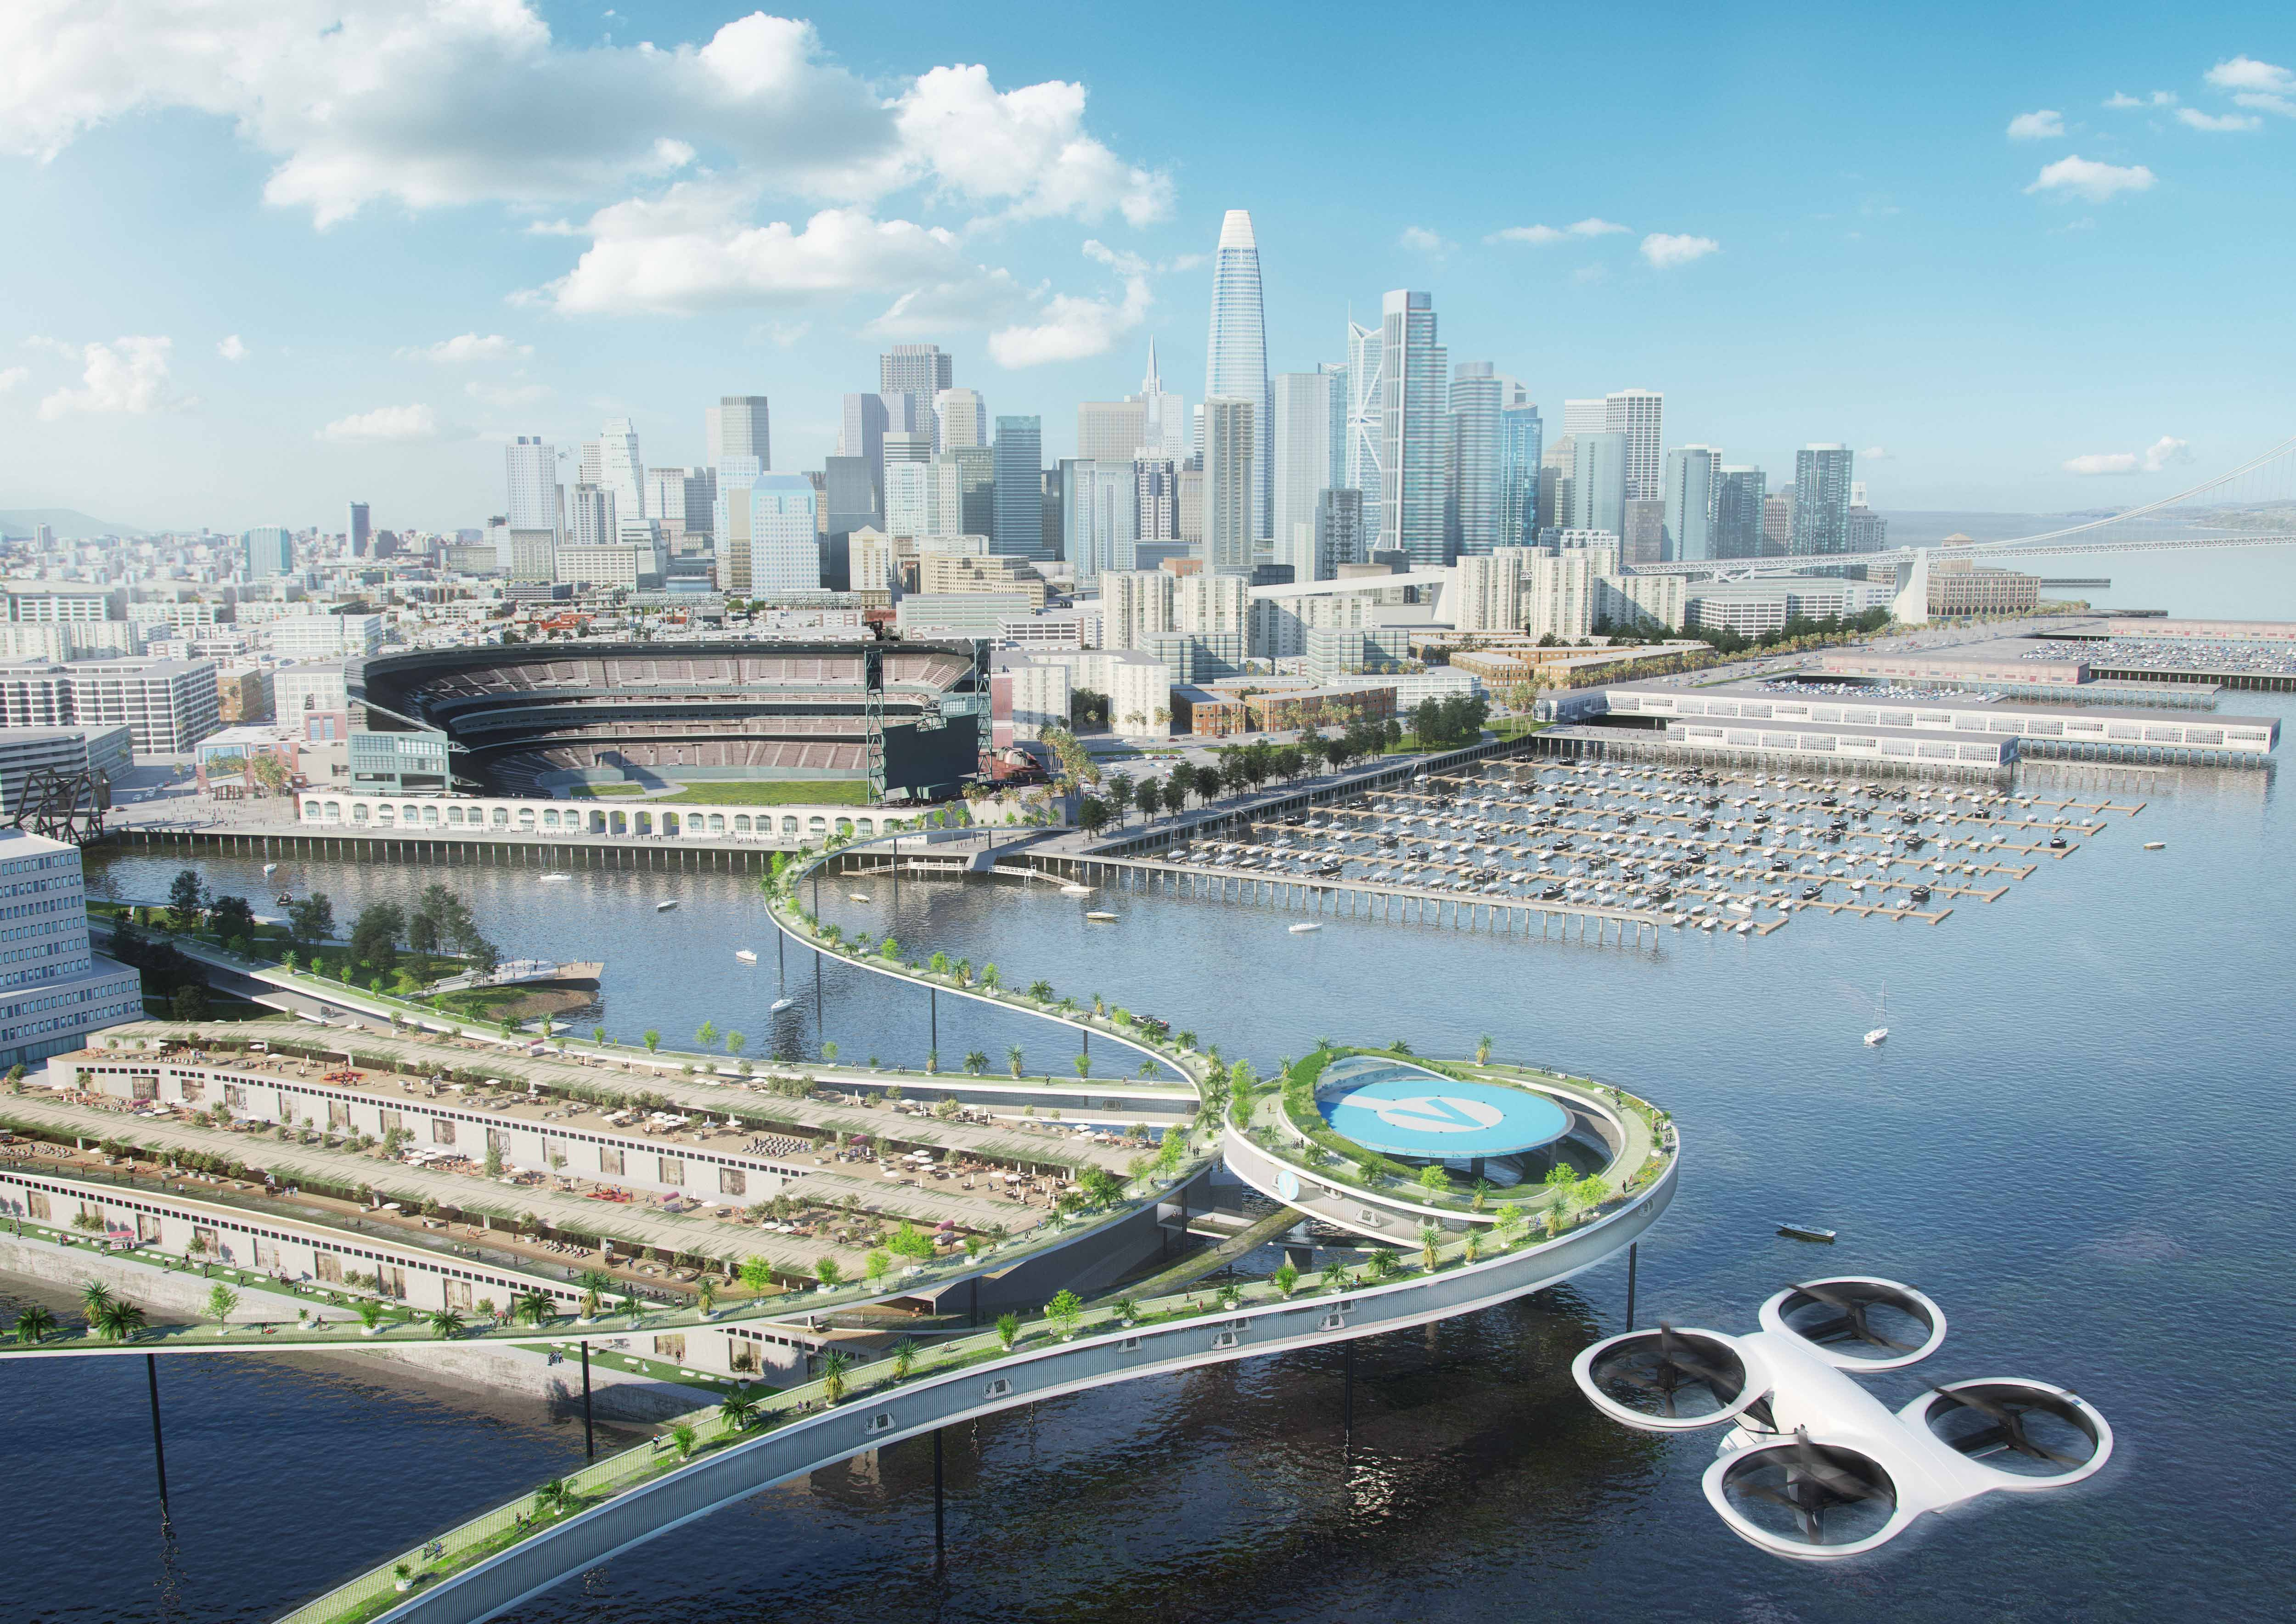 Flying vehicles may soon reality in 2020 Future city